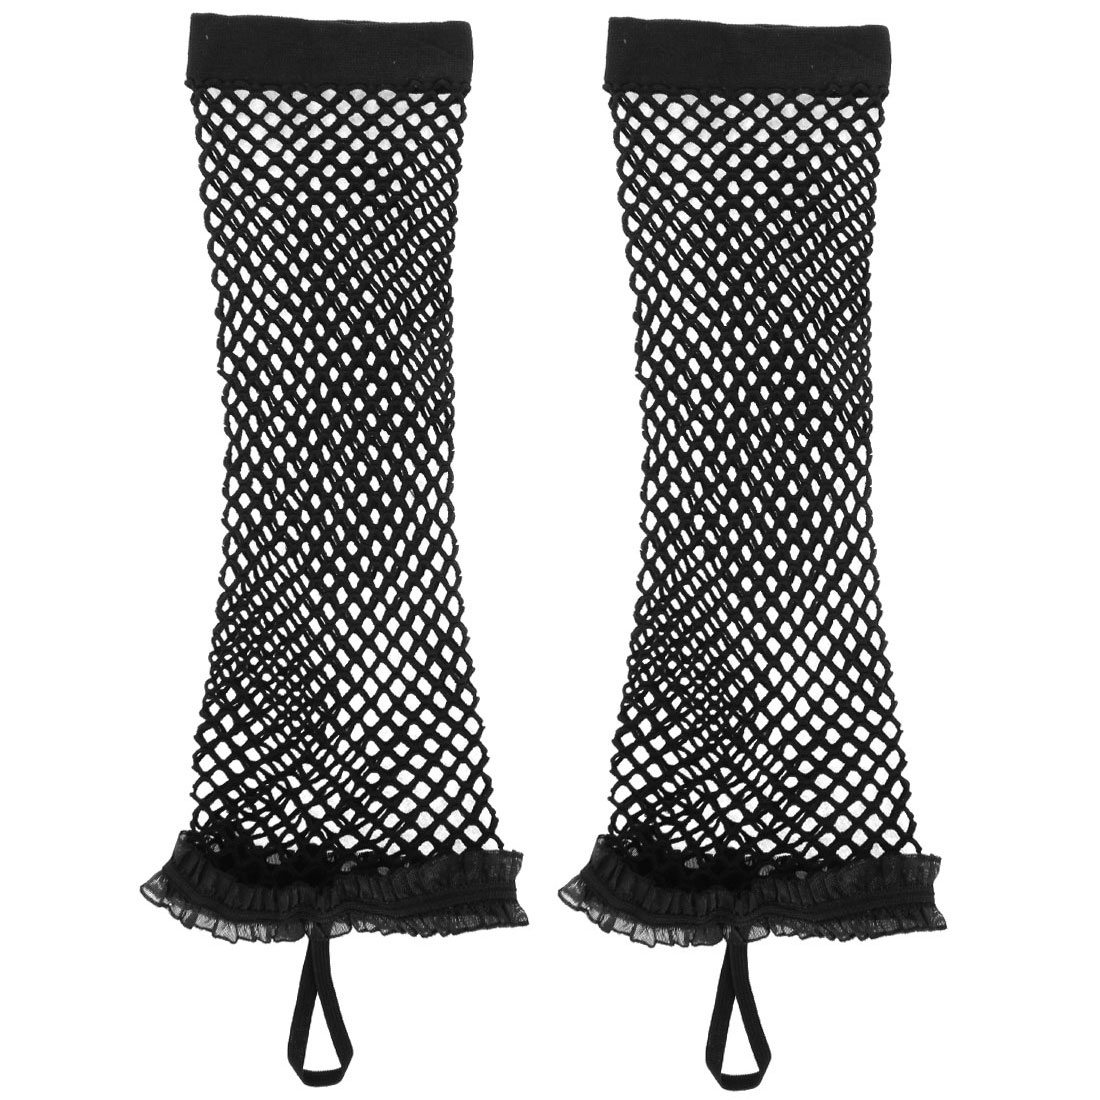 Woman Elbow Length Elastic Fishnet Chiffon Trimming Fingerless Arm Warmers Gloves Black Pair